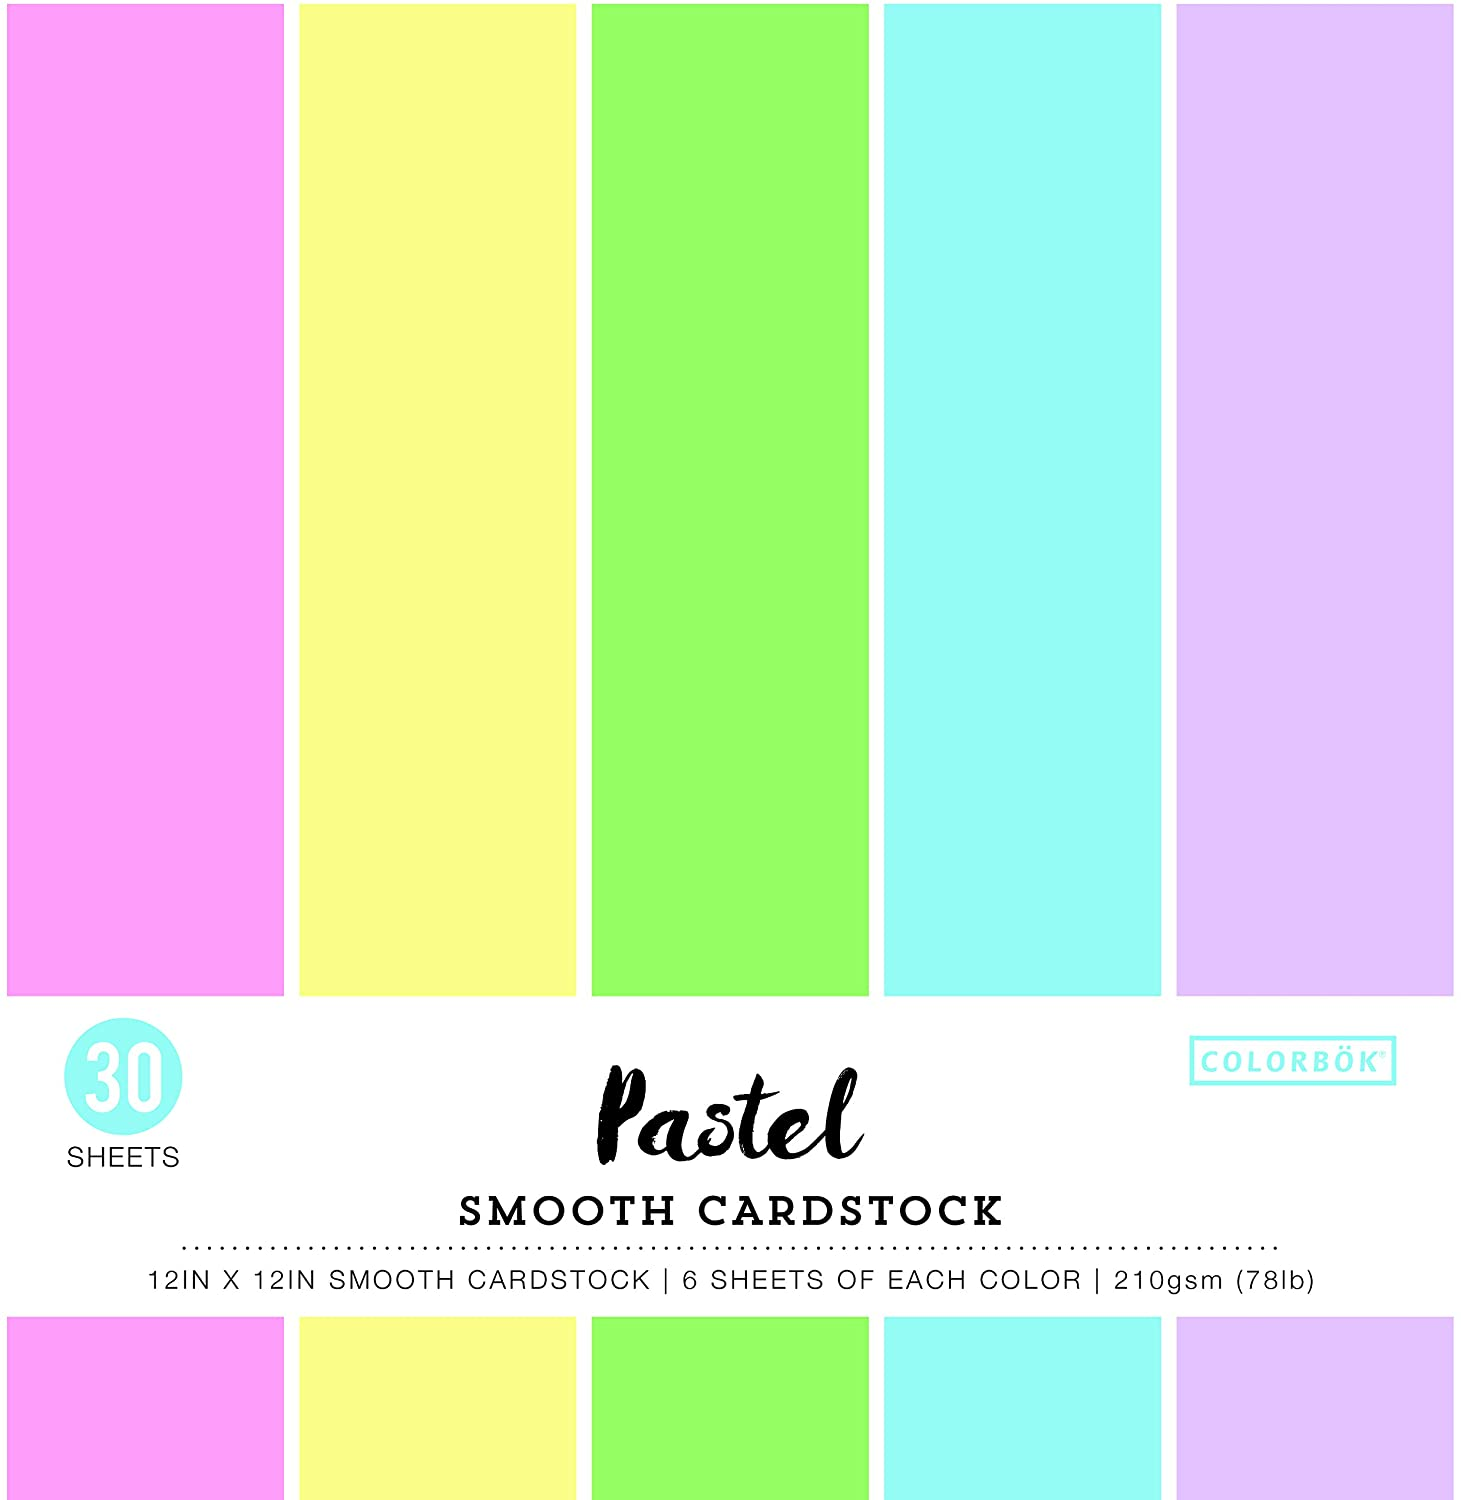 Colorbok Smooth Cardstock Paper Pad, 12 x 12, Pastel